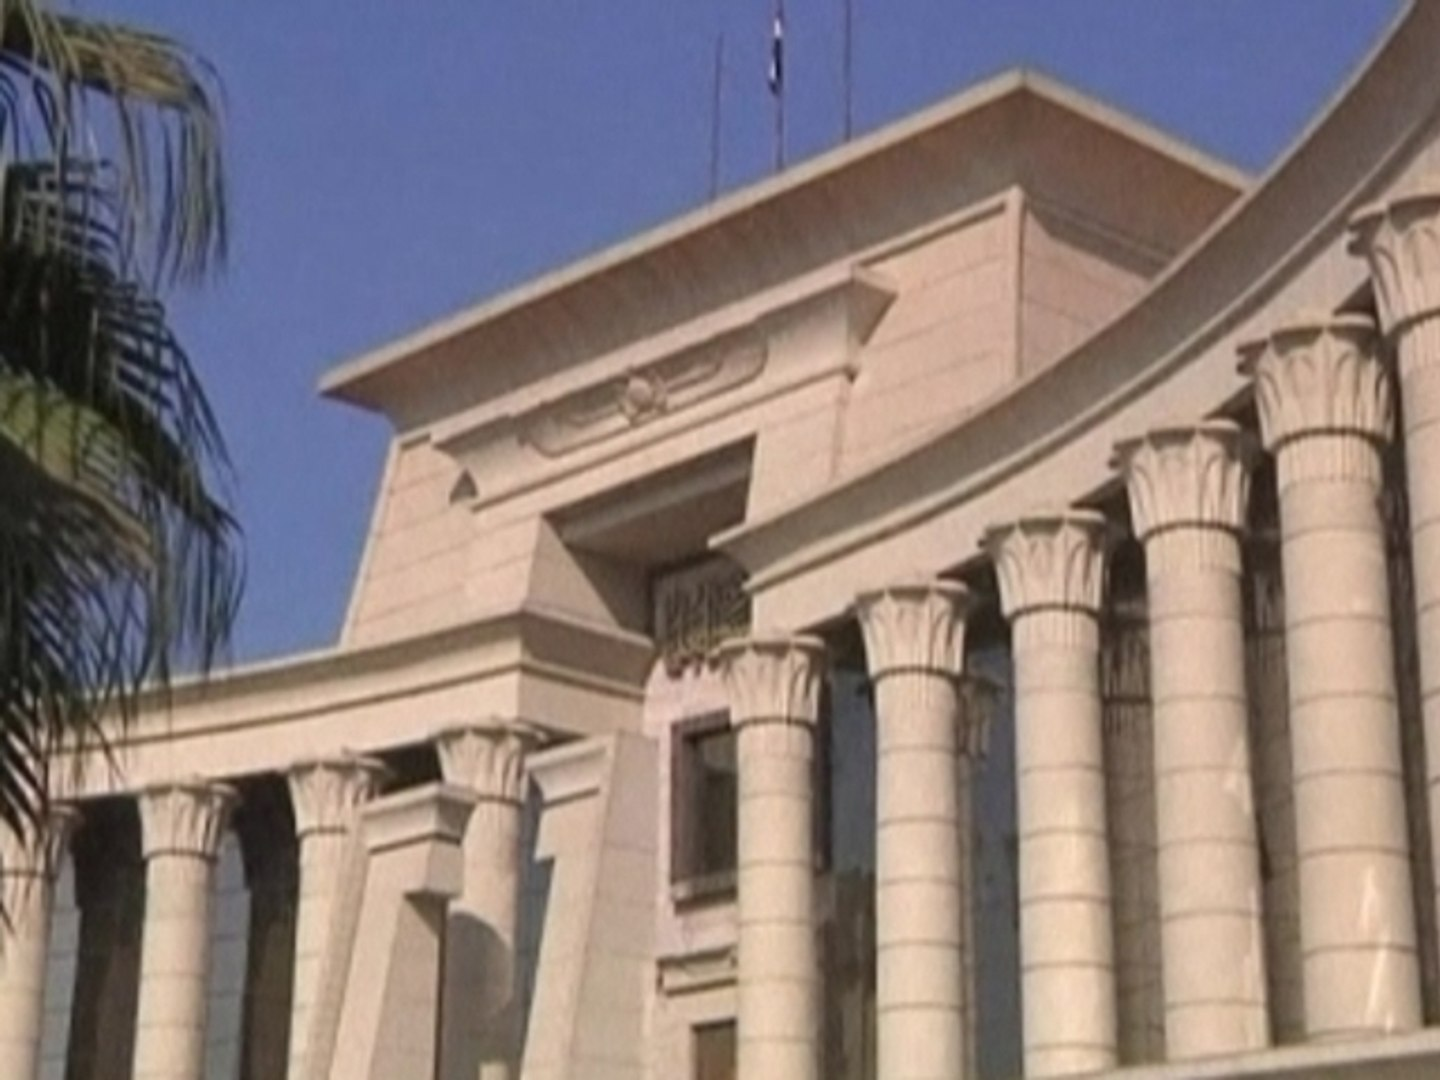 Egypt court accuses president of waging campaign against it